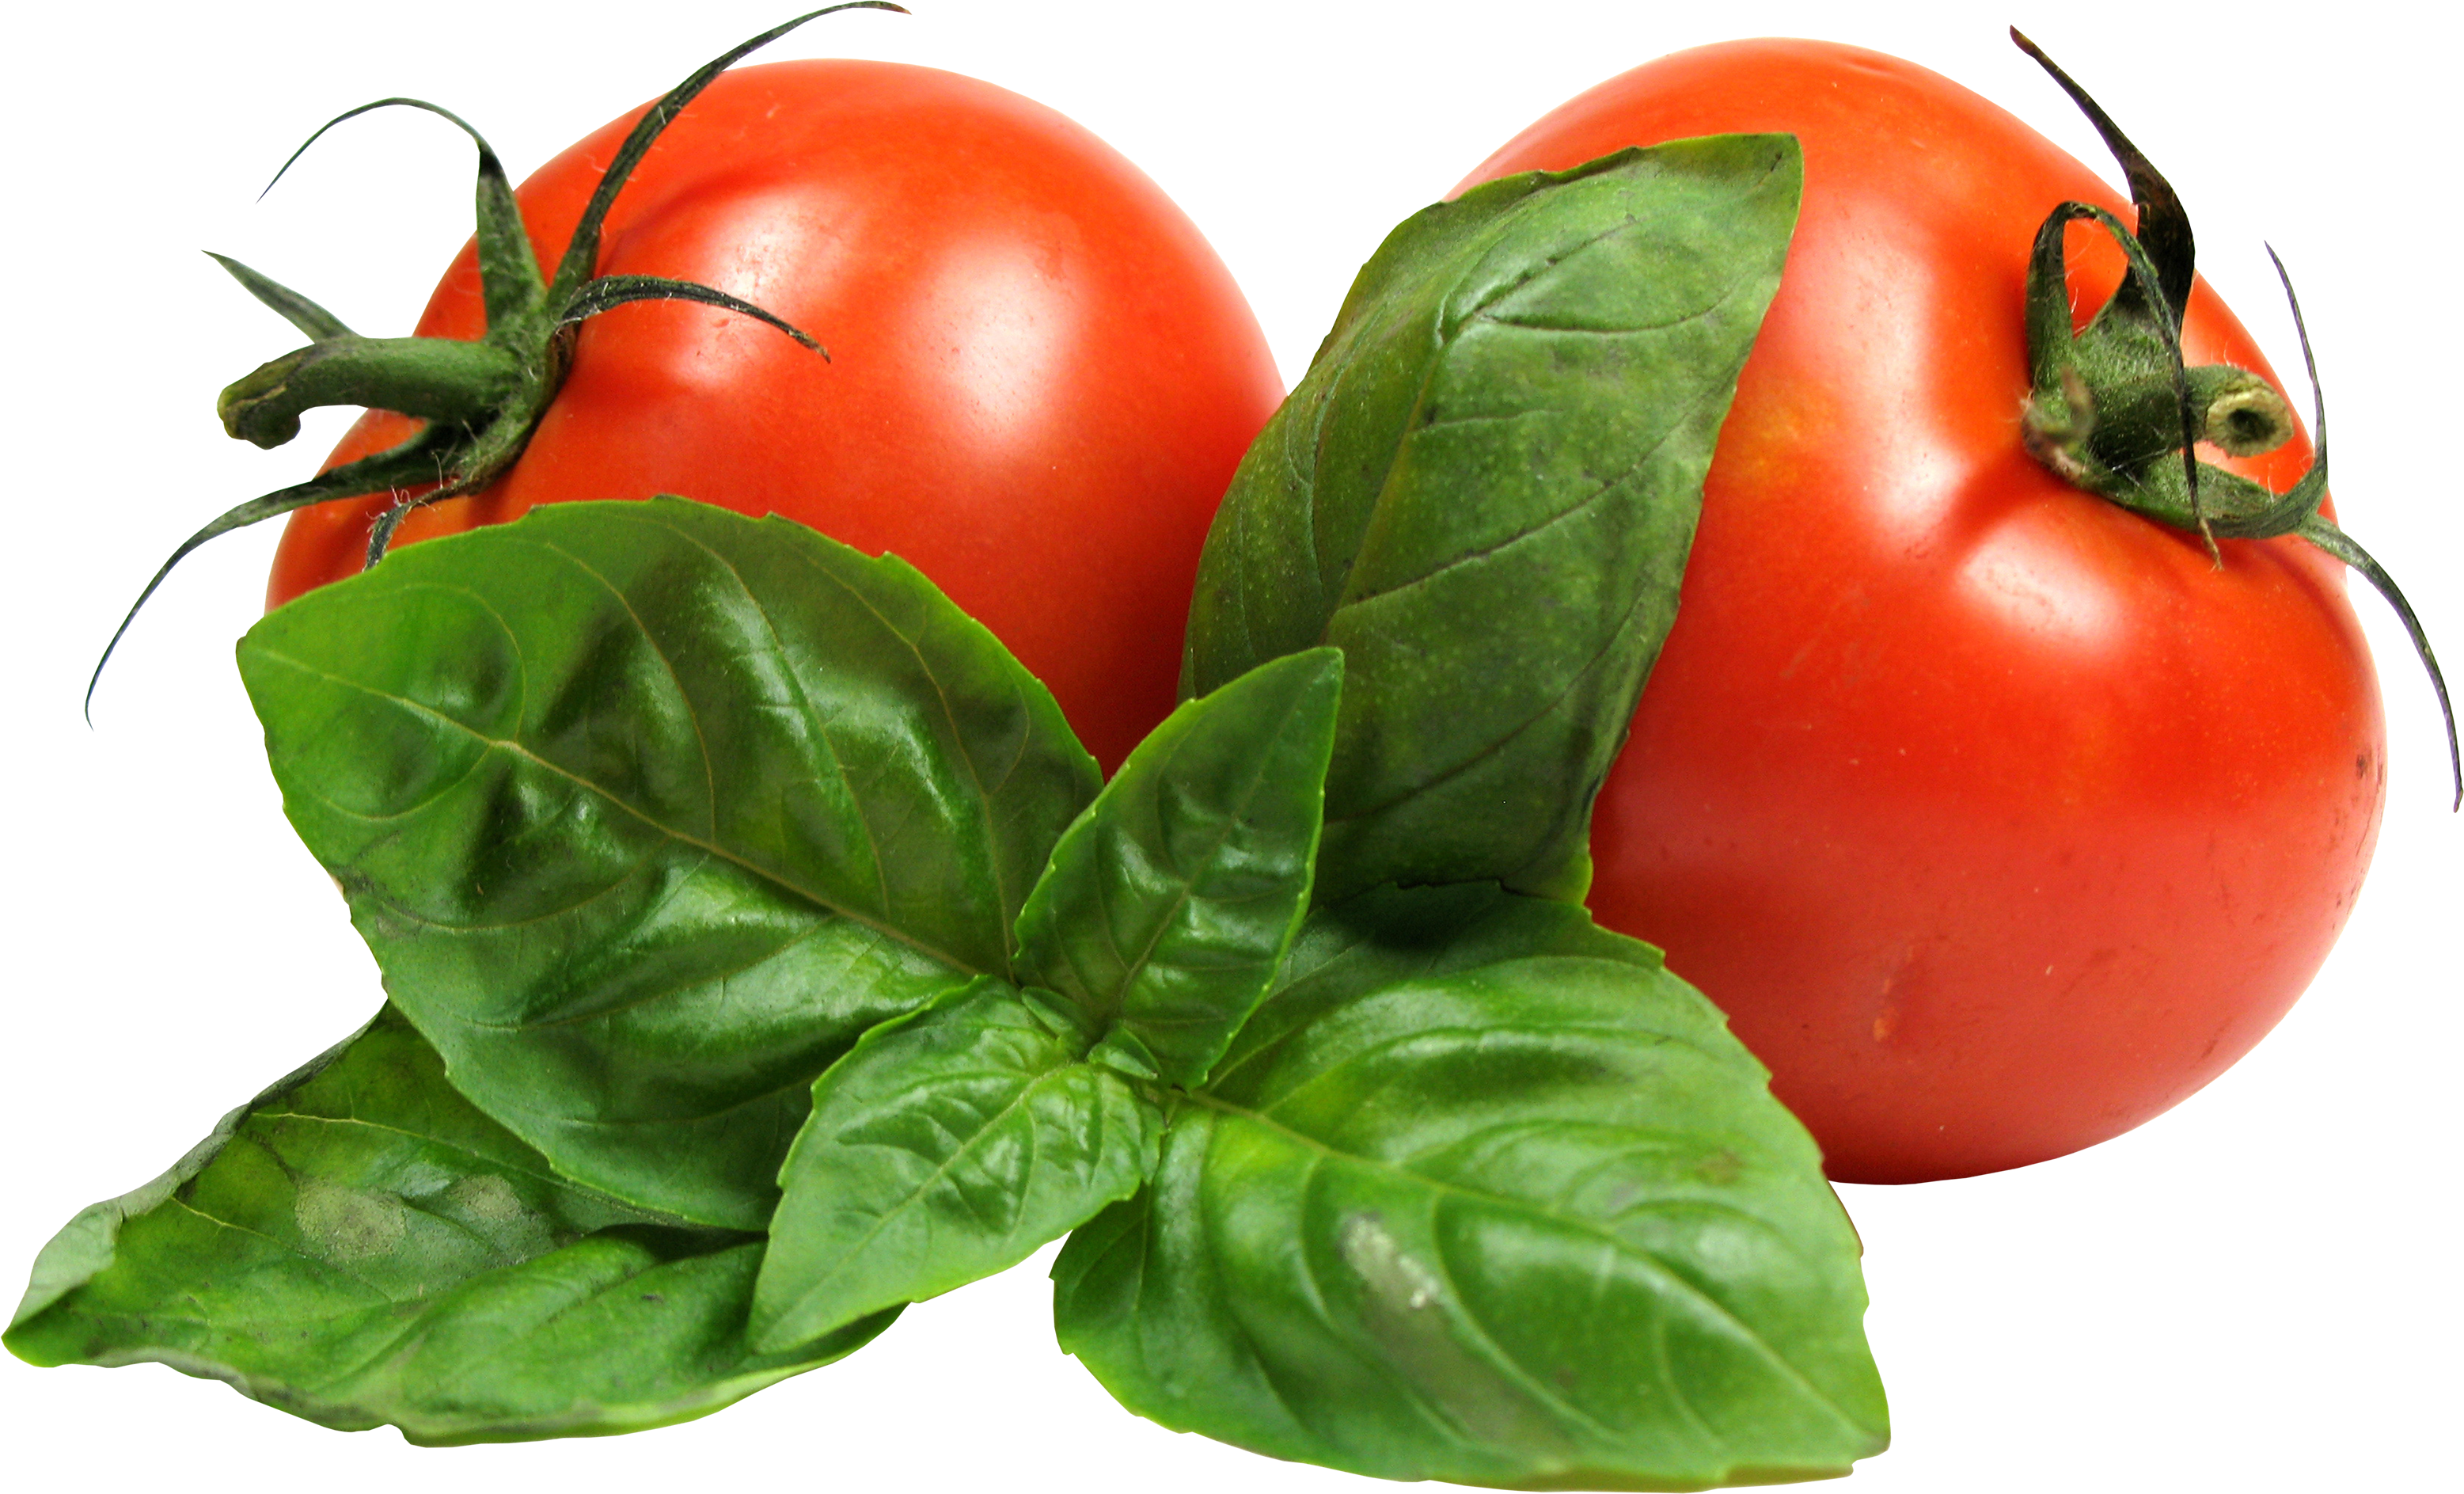 Tomato Hd Image PNG Images